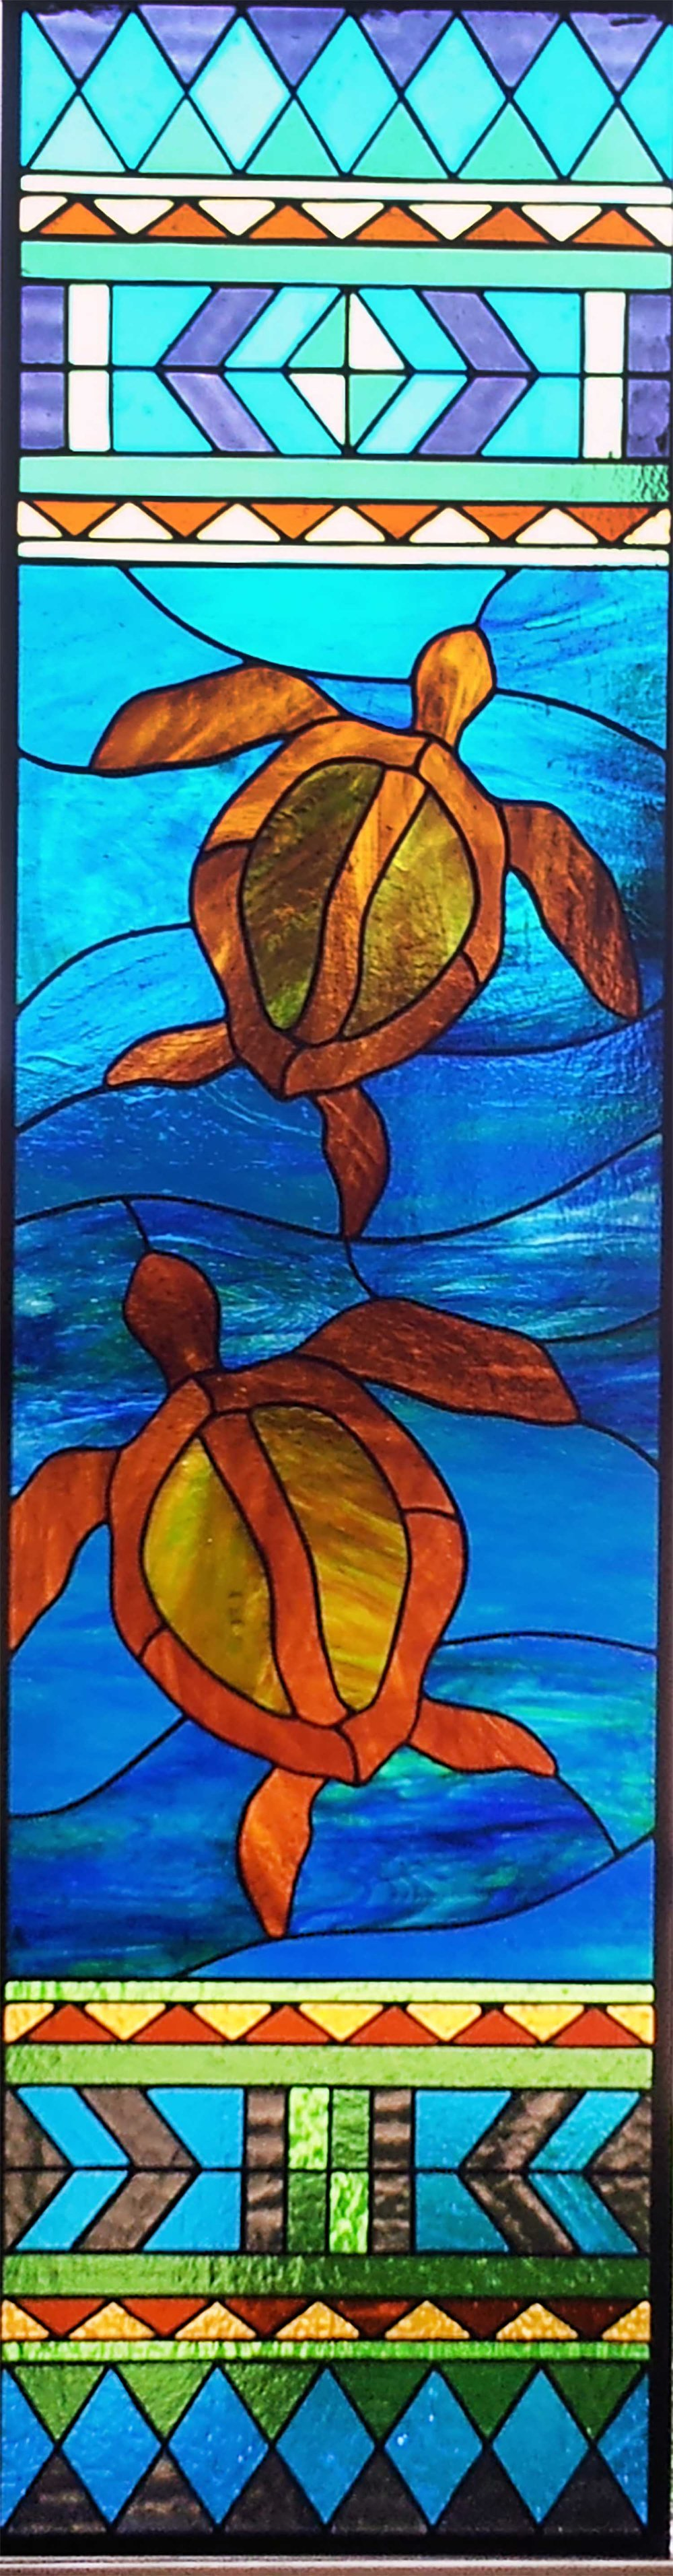 sea turtle ocean geometric leaded glass stained glass studio palo alto atherton california san francisco san jose legacy glass.jpg